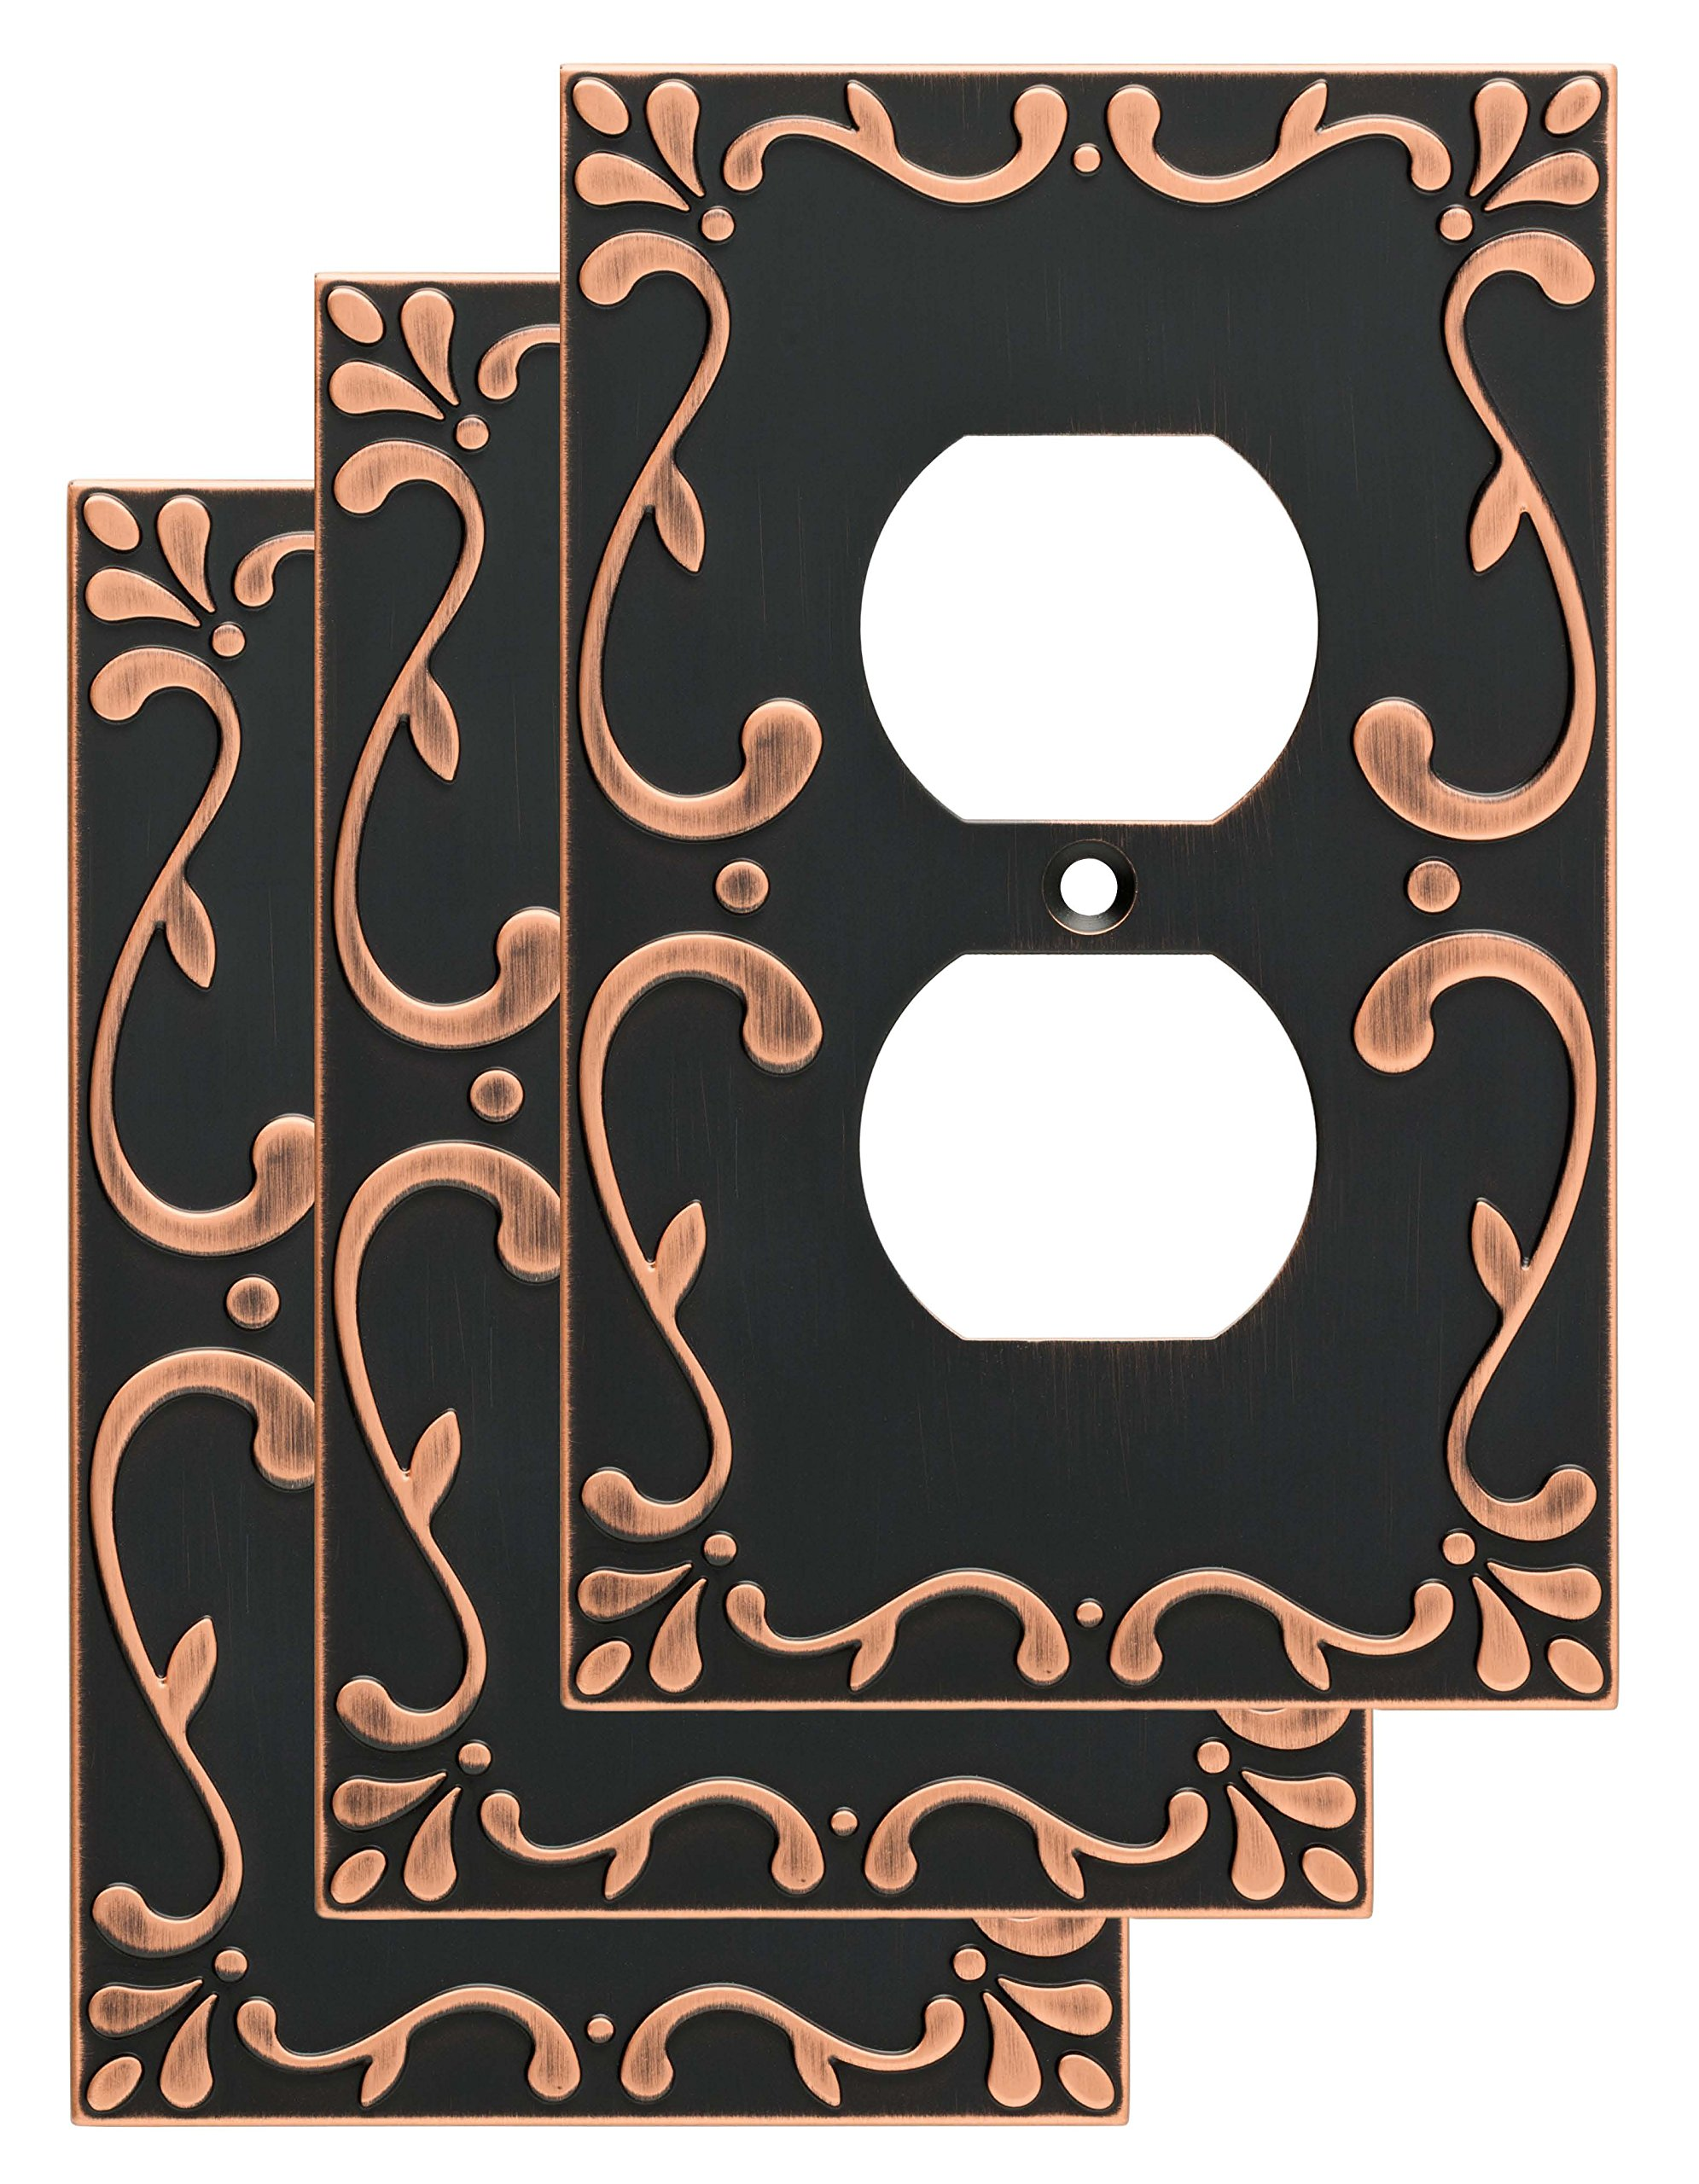 Franklin Brass W35071V-VBC-C Classic Lace Single Duplex Wall Plate/Switch Plate/Cover (3 Pack) with Copper Highlights, Bronze by Franklin Brass